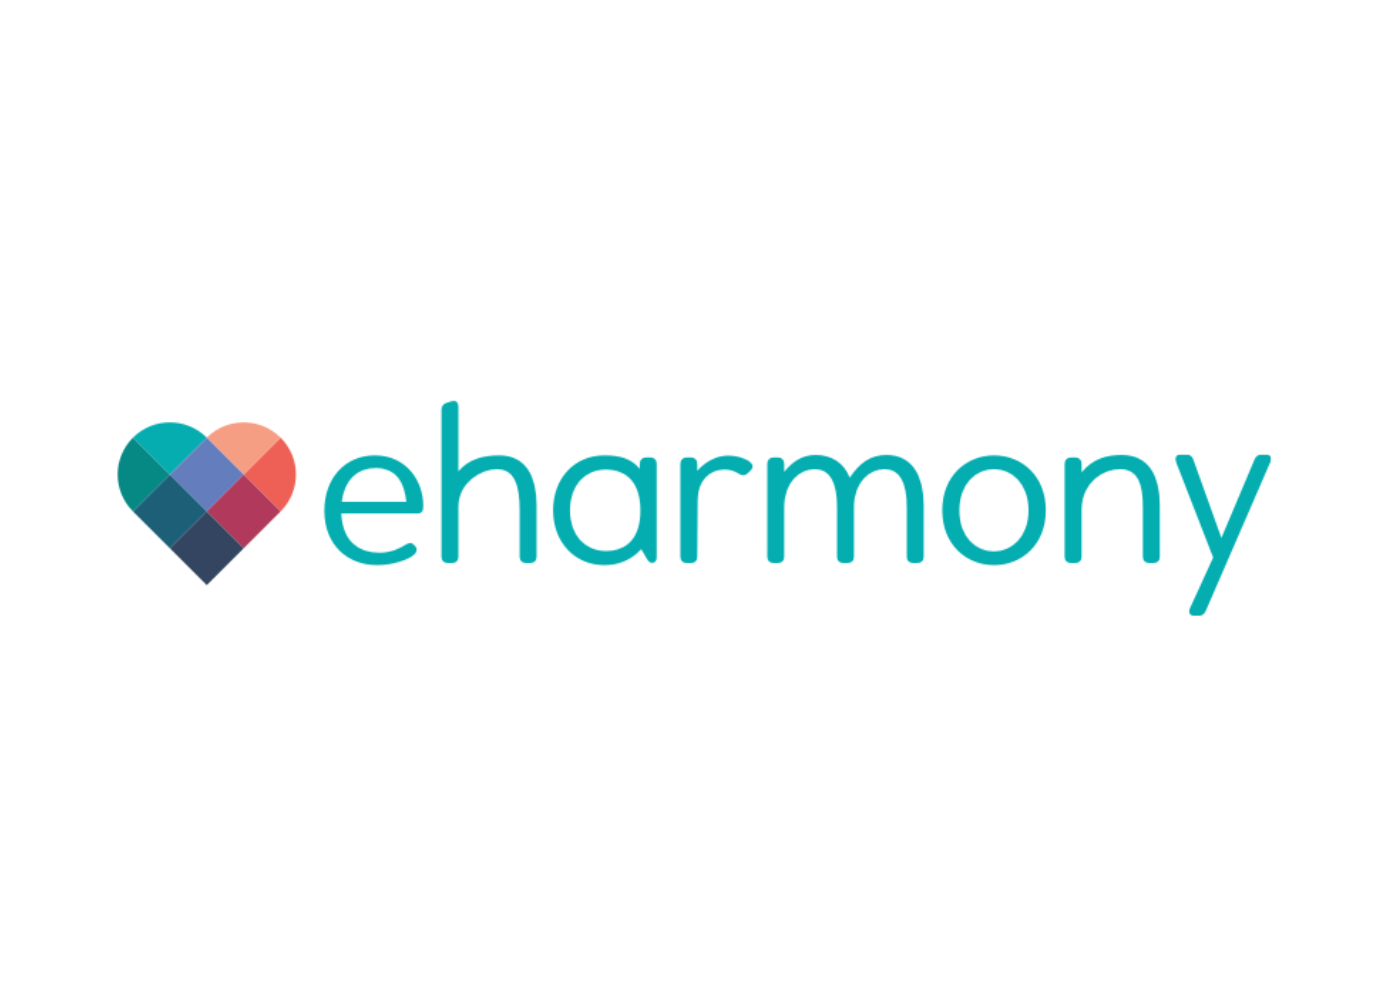 Why join eharmony